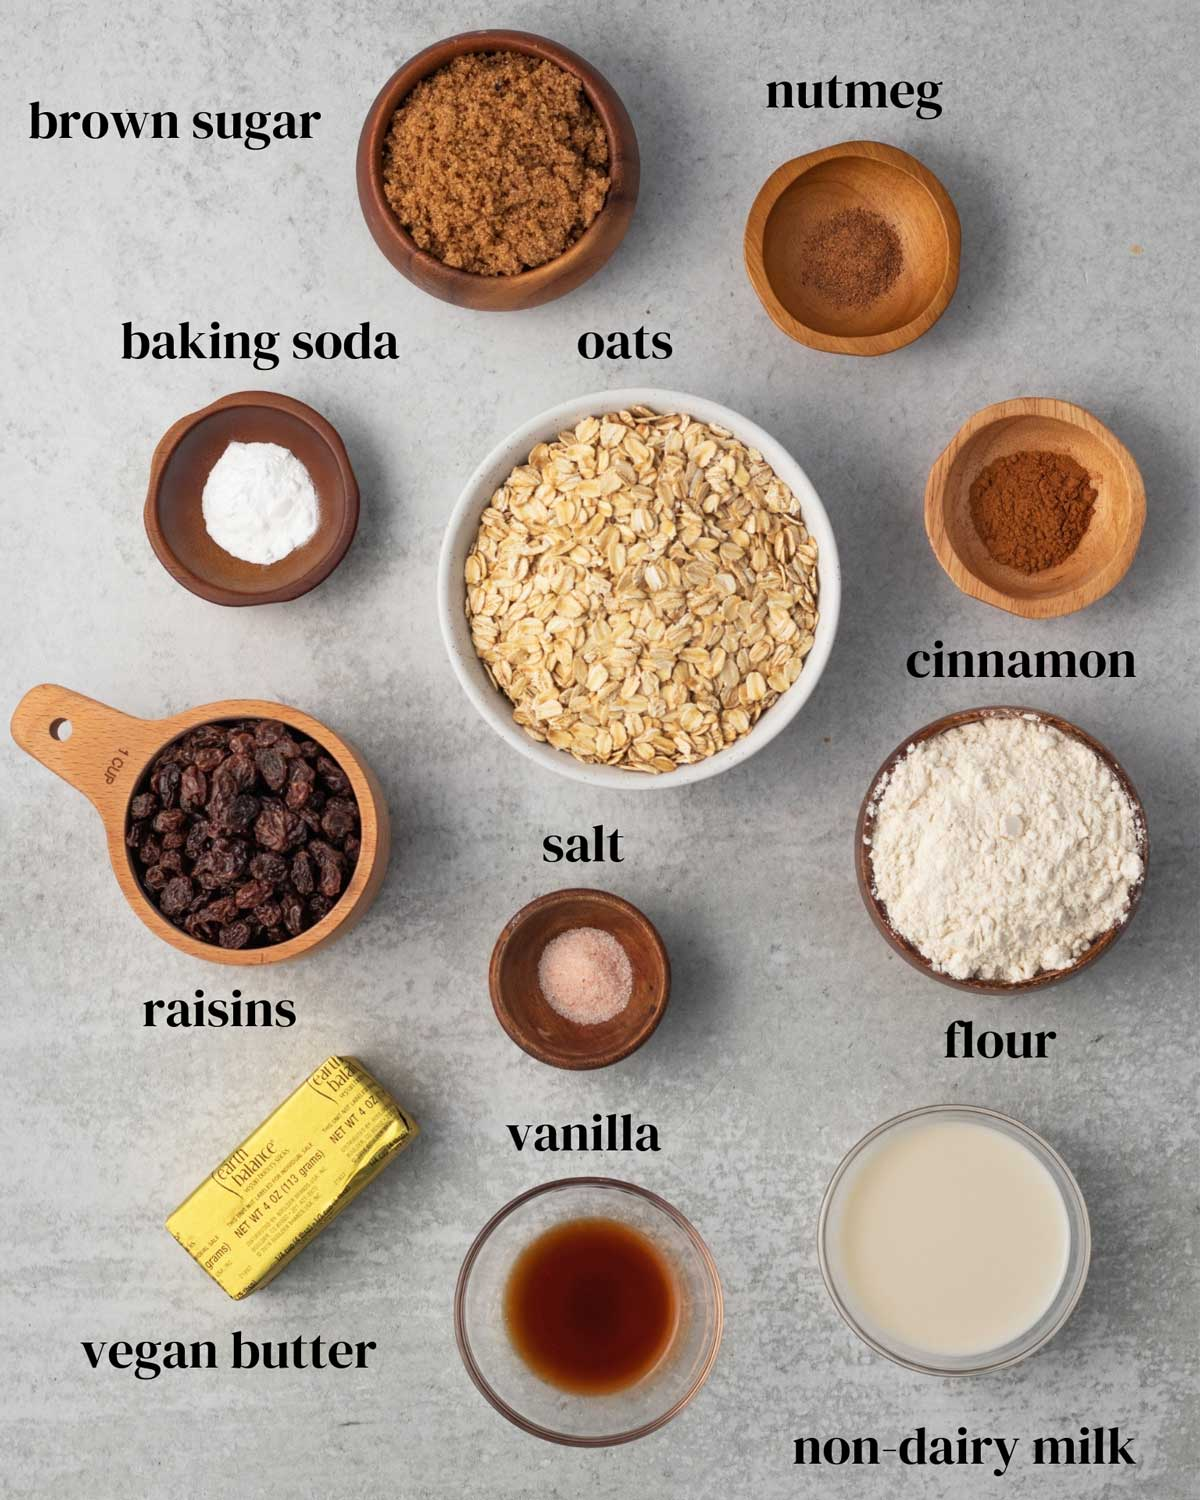 Ingredients laid out on a surface. Brown sugar, nutmeg, cinnamon, baking soda, oats, flour, salt, raisins, vanilla, non-dairy milk and vegan butter.